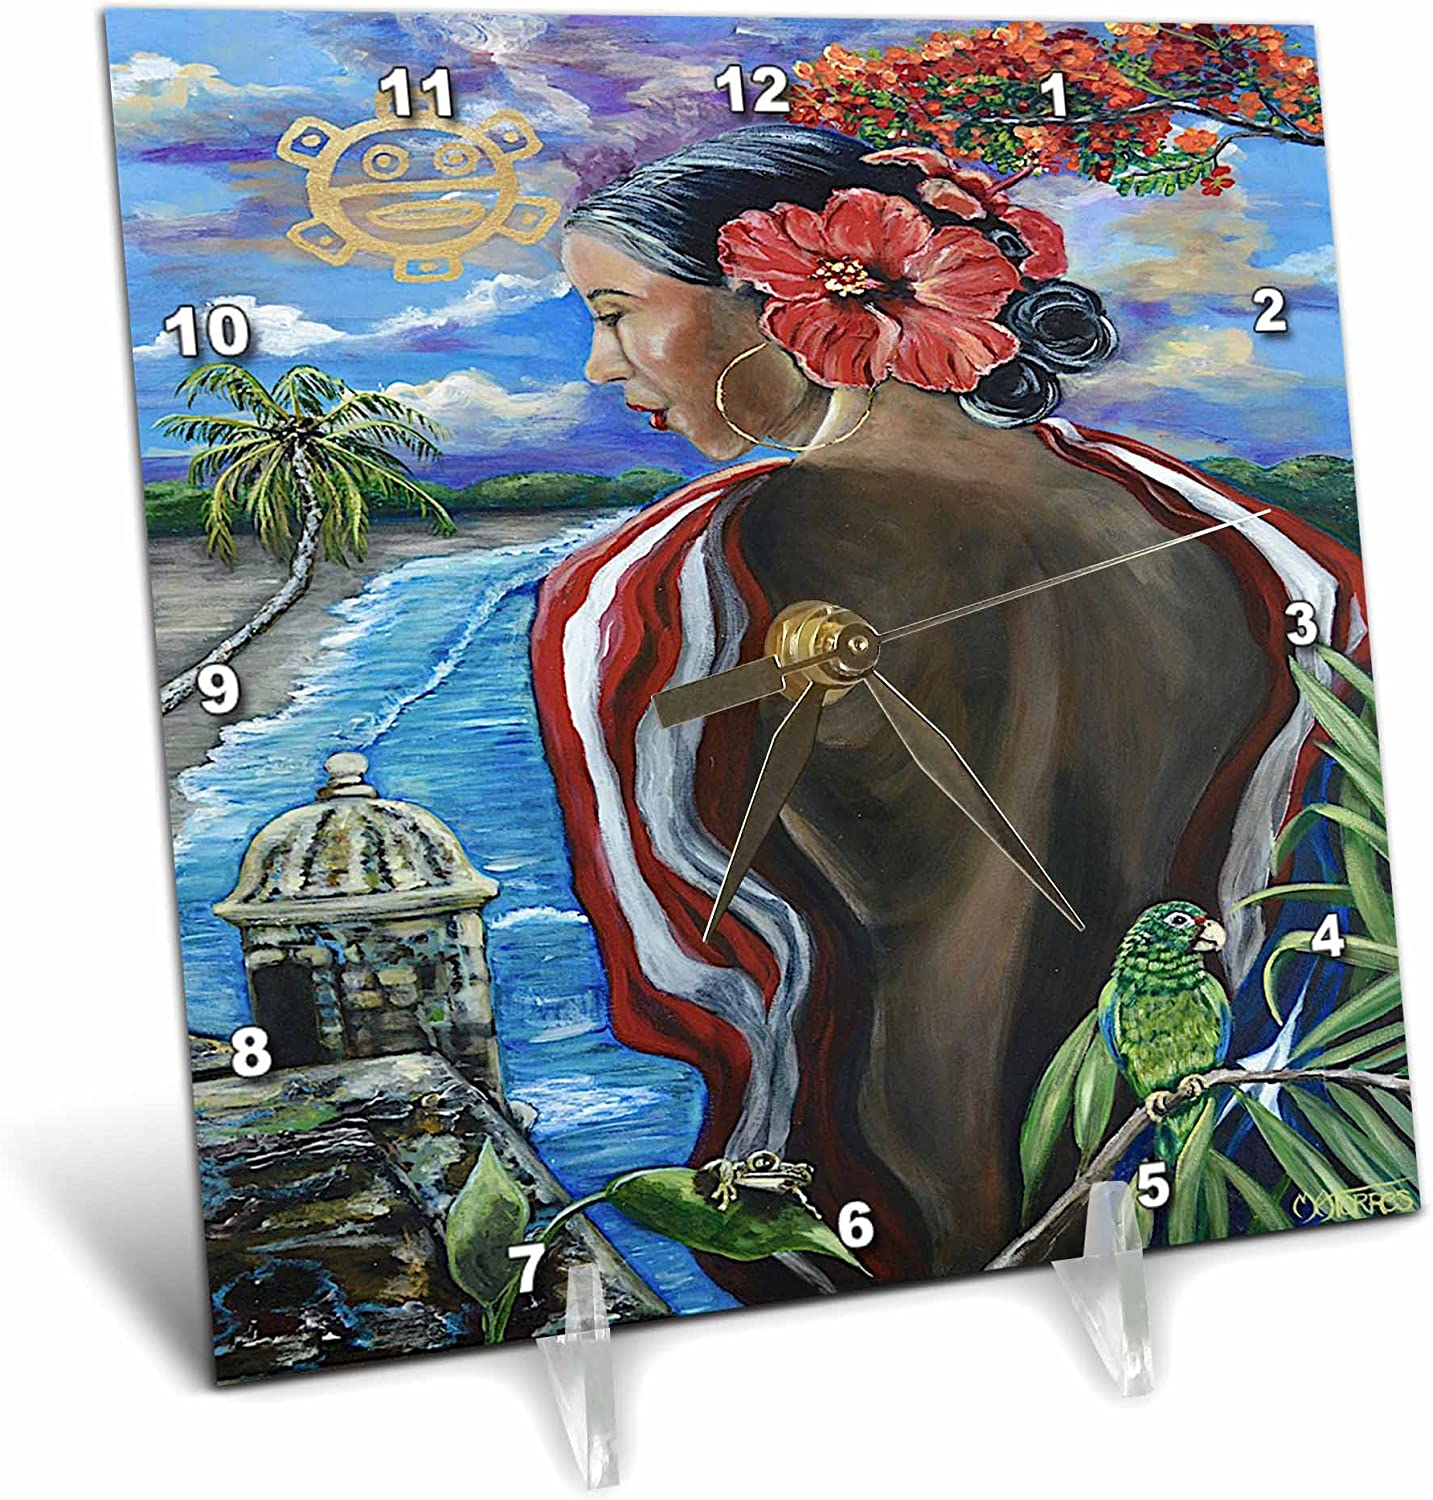 3dRose Melissa A. Torres Art Puerto Rican Art - Image of Woman with Puerto Rican Imagery - 6x6 Desk Clock (dc_261559_1)